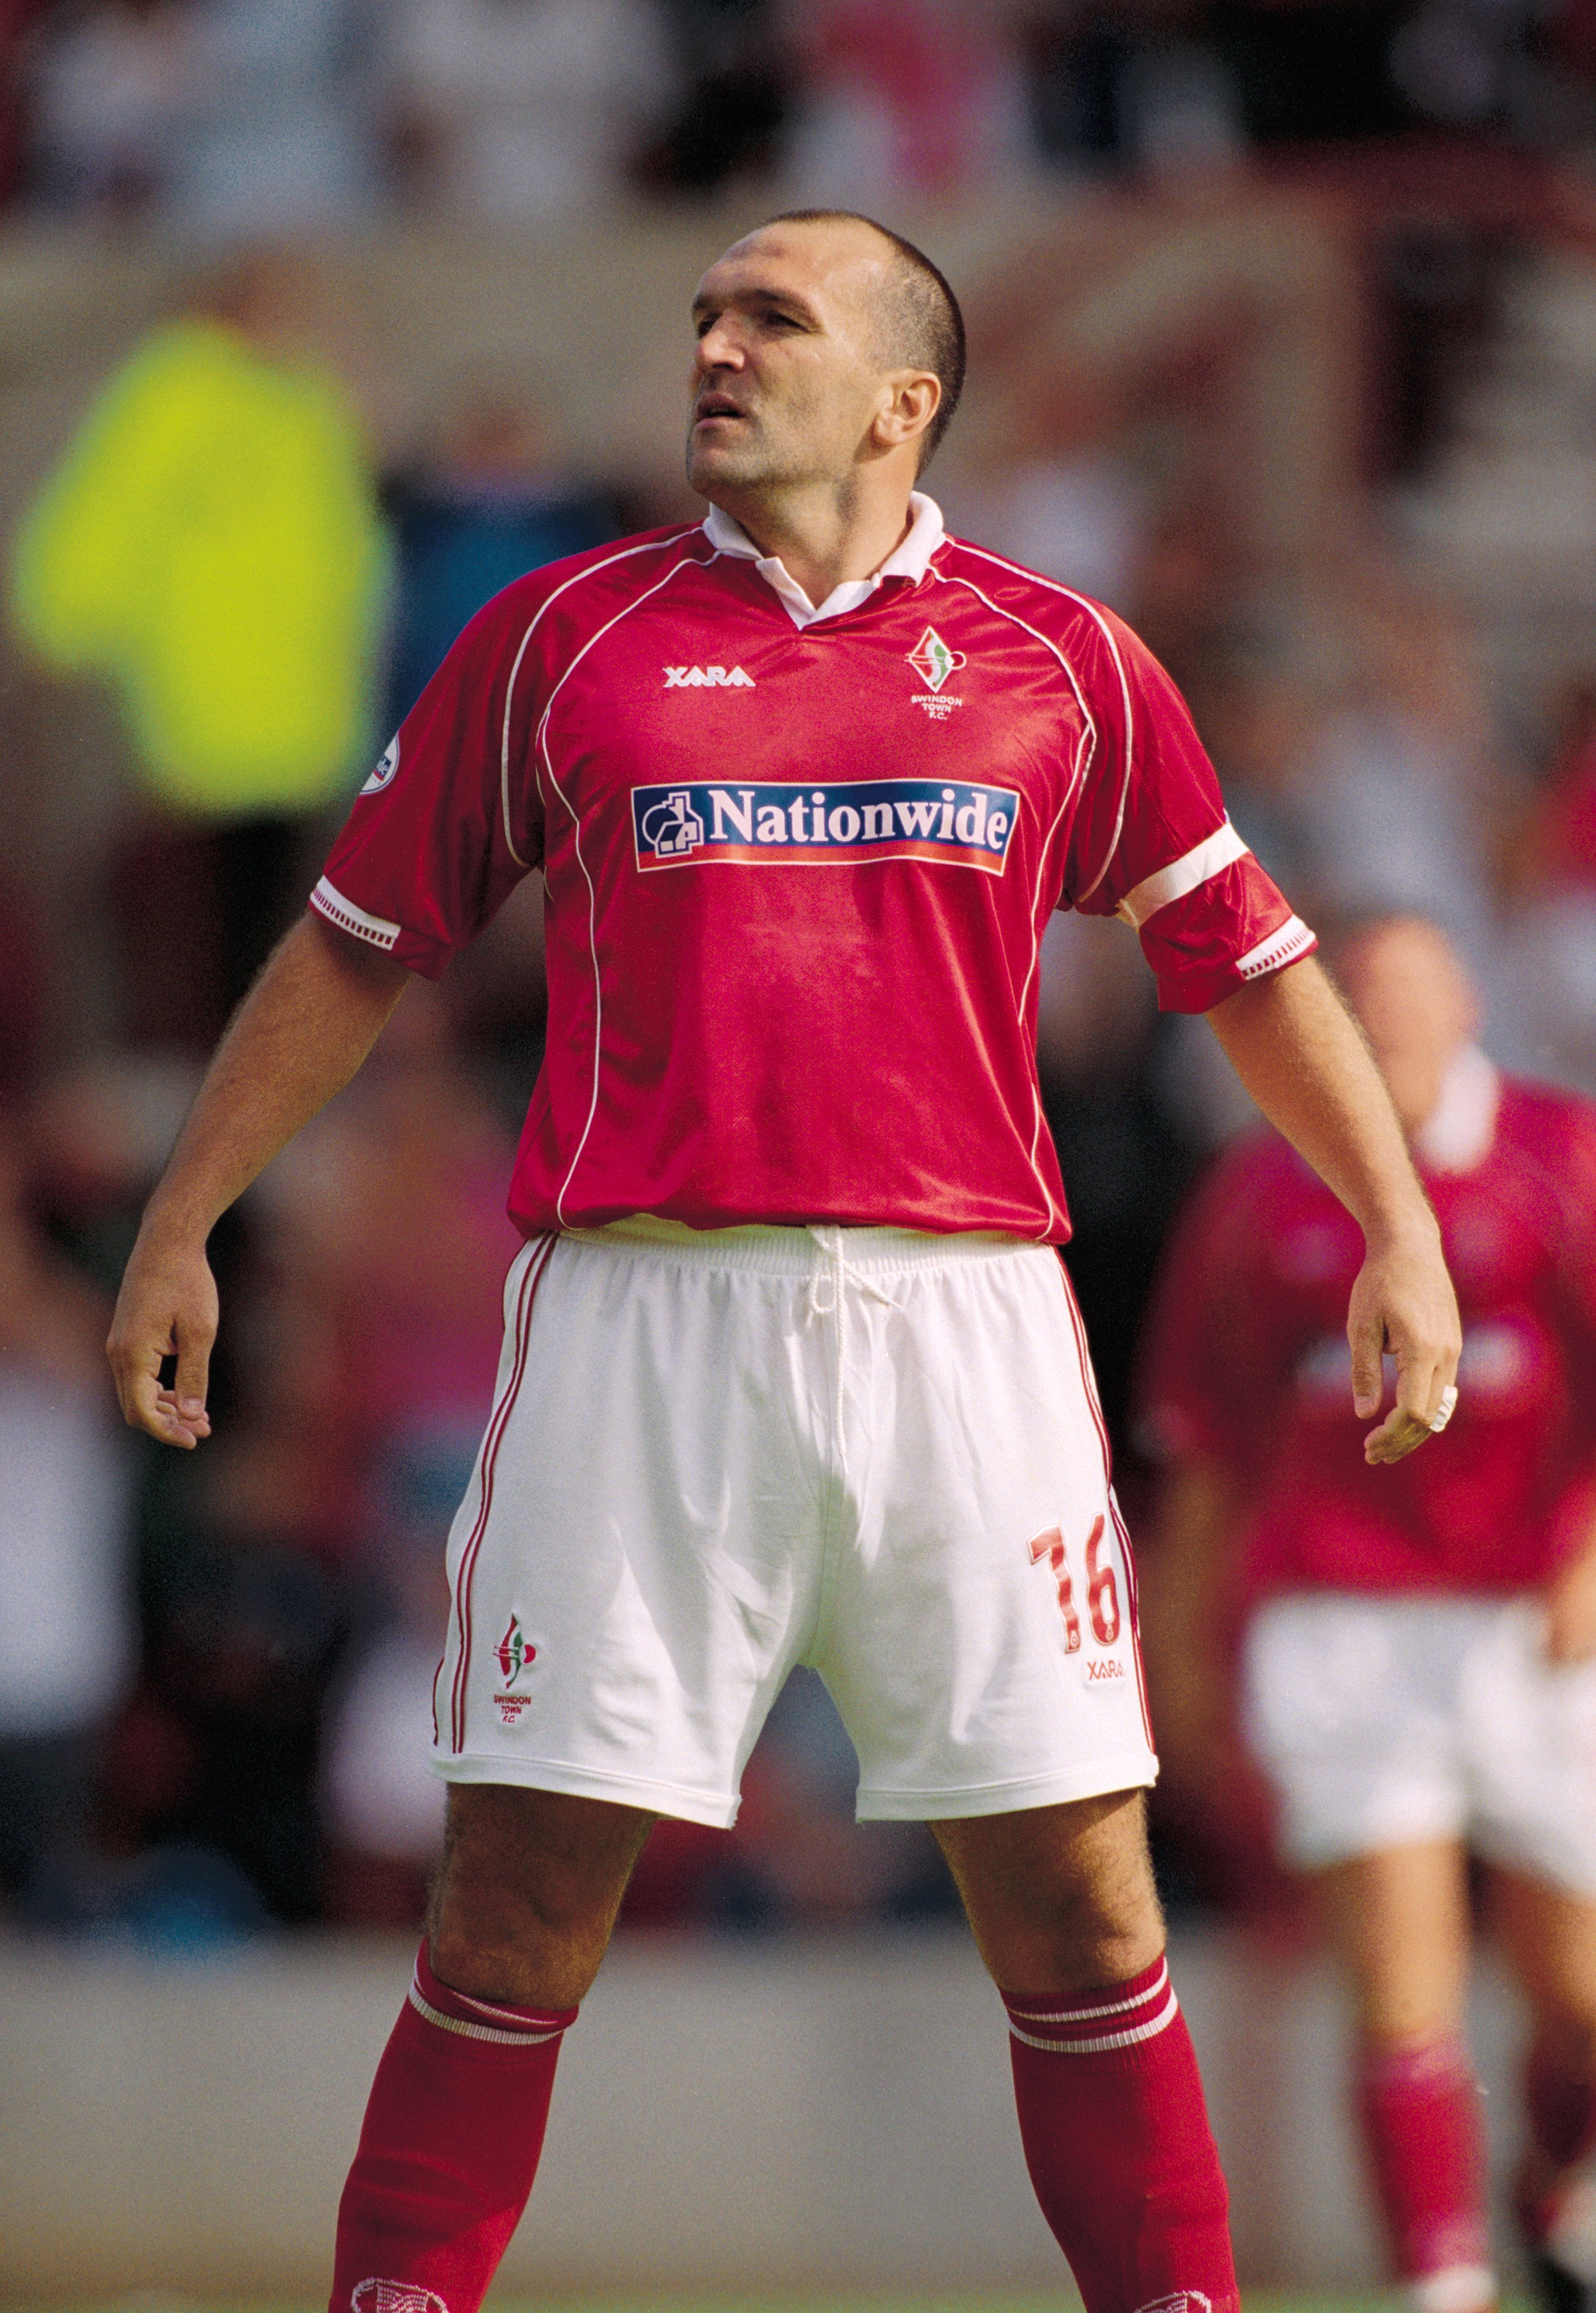 1 Sep 2001:  Neil Ruddock of Swindon Town in action during the Nationwide League Division Two match against Colchester United played at the County Ground, in Swindon, England. Swindon Town won the match 1-0. \ Mandatory Credit: Steve Bardens /Allsport